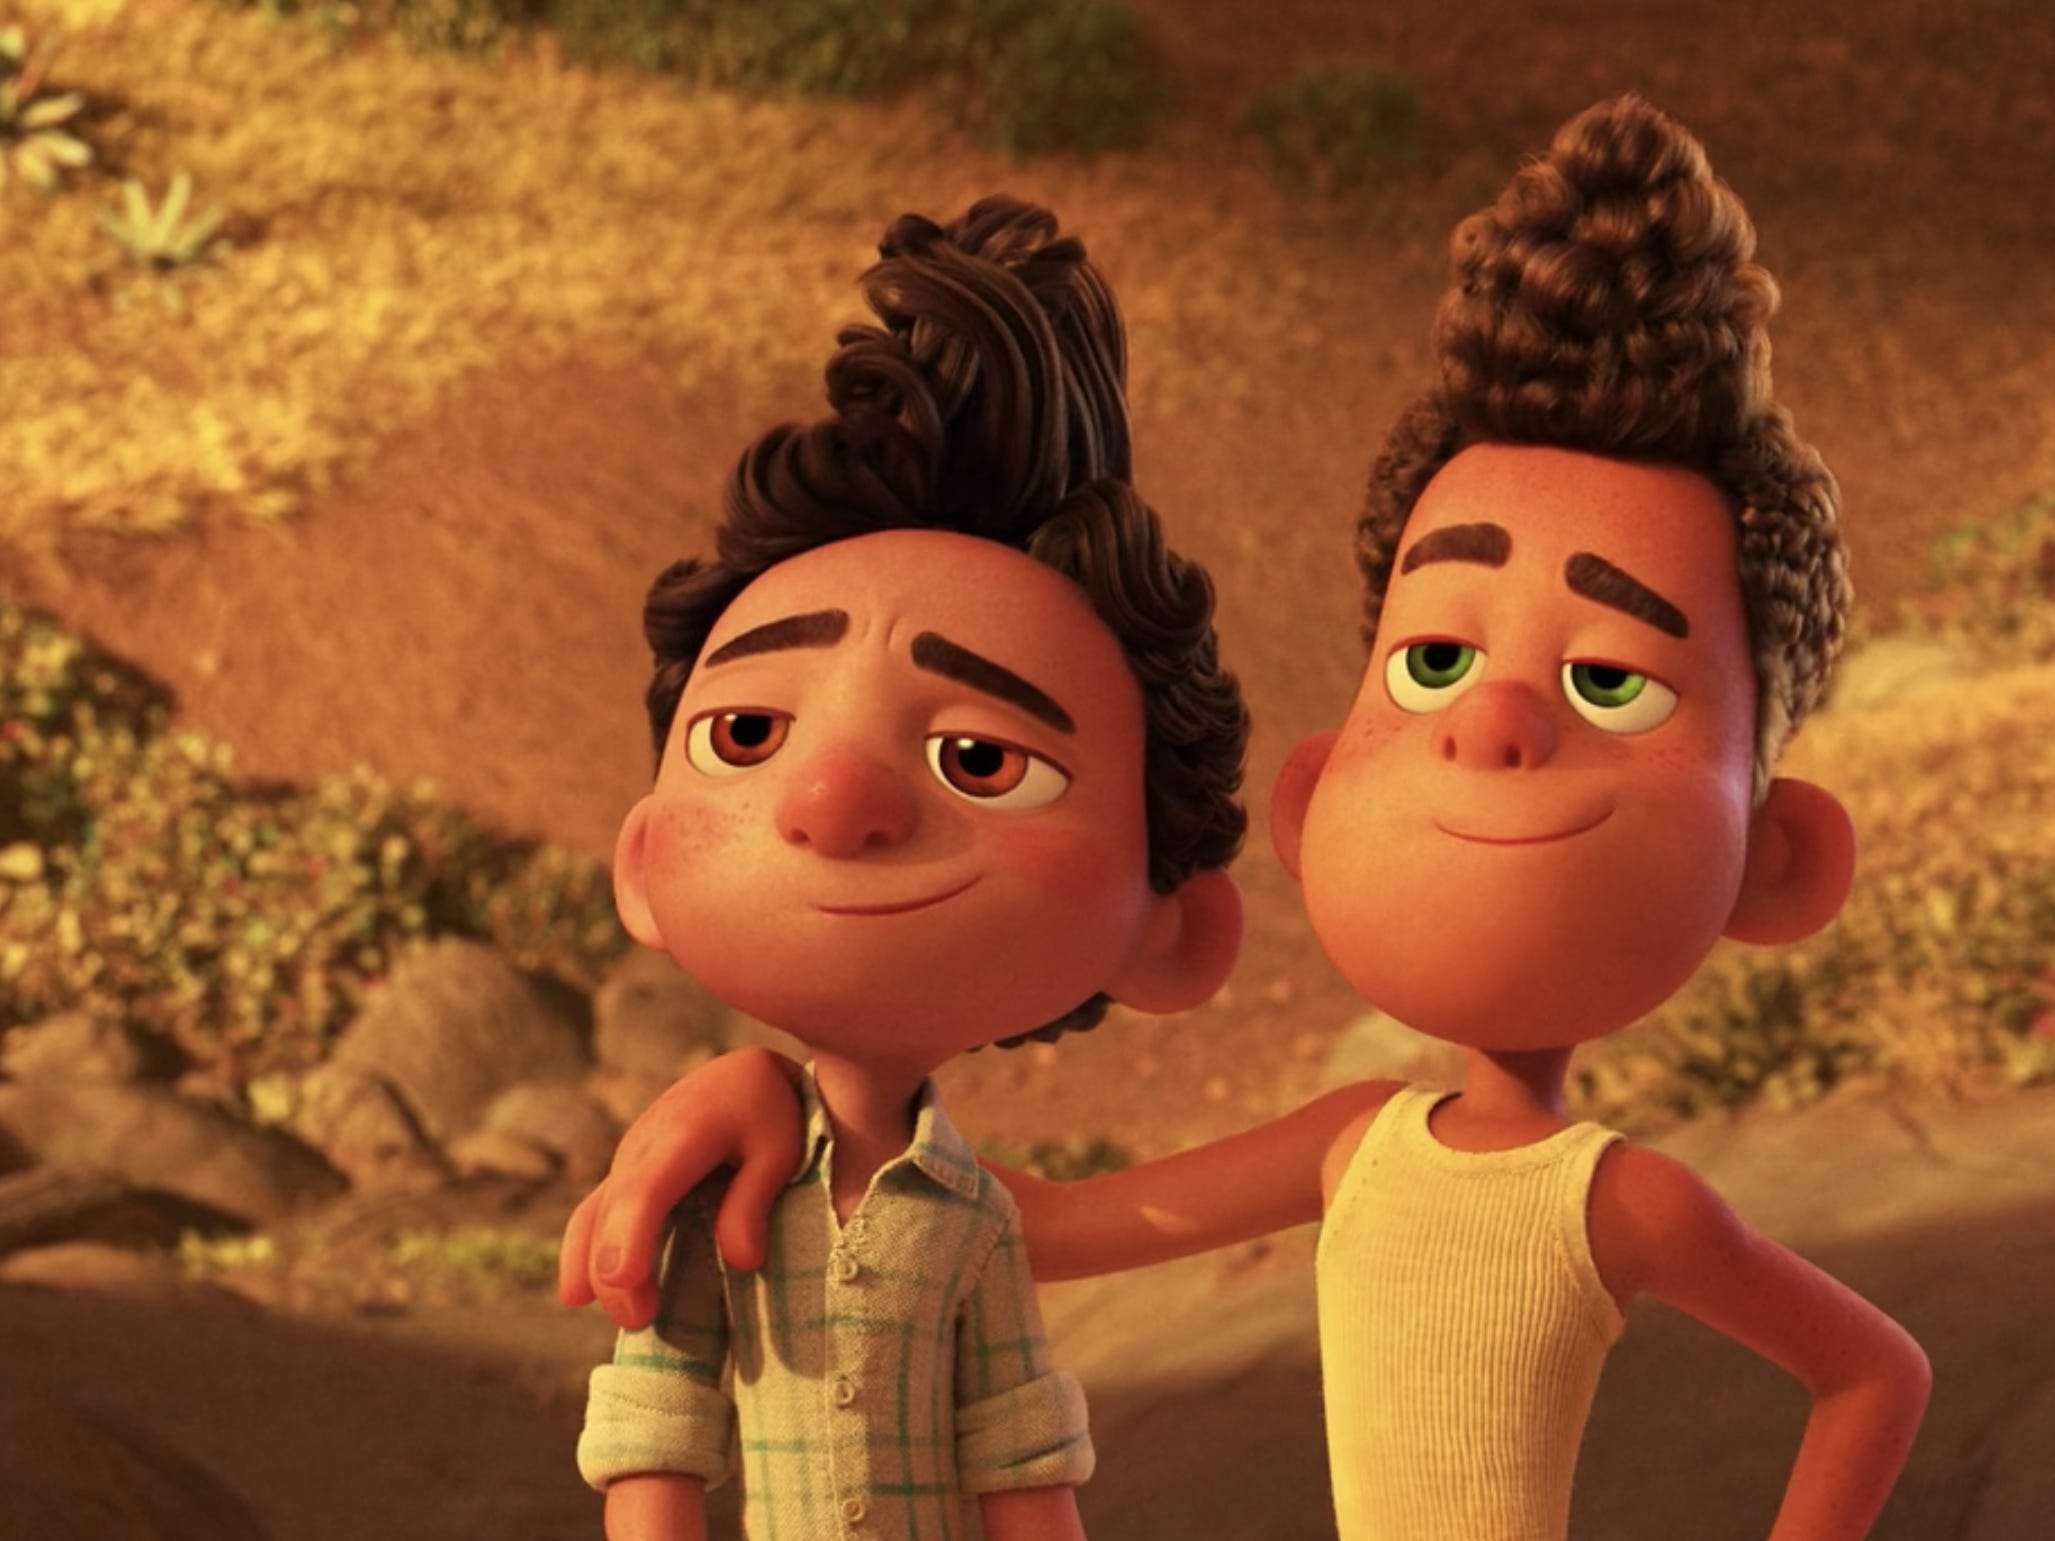 Luca' proves Disney's Pixar wasn't brave enough to fully commit to their first queer animated film